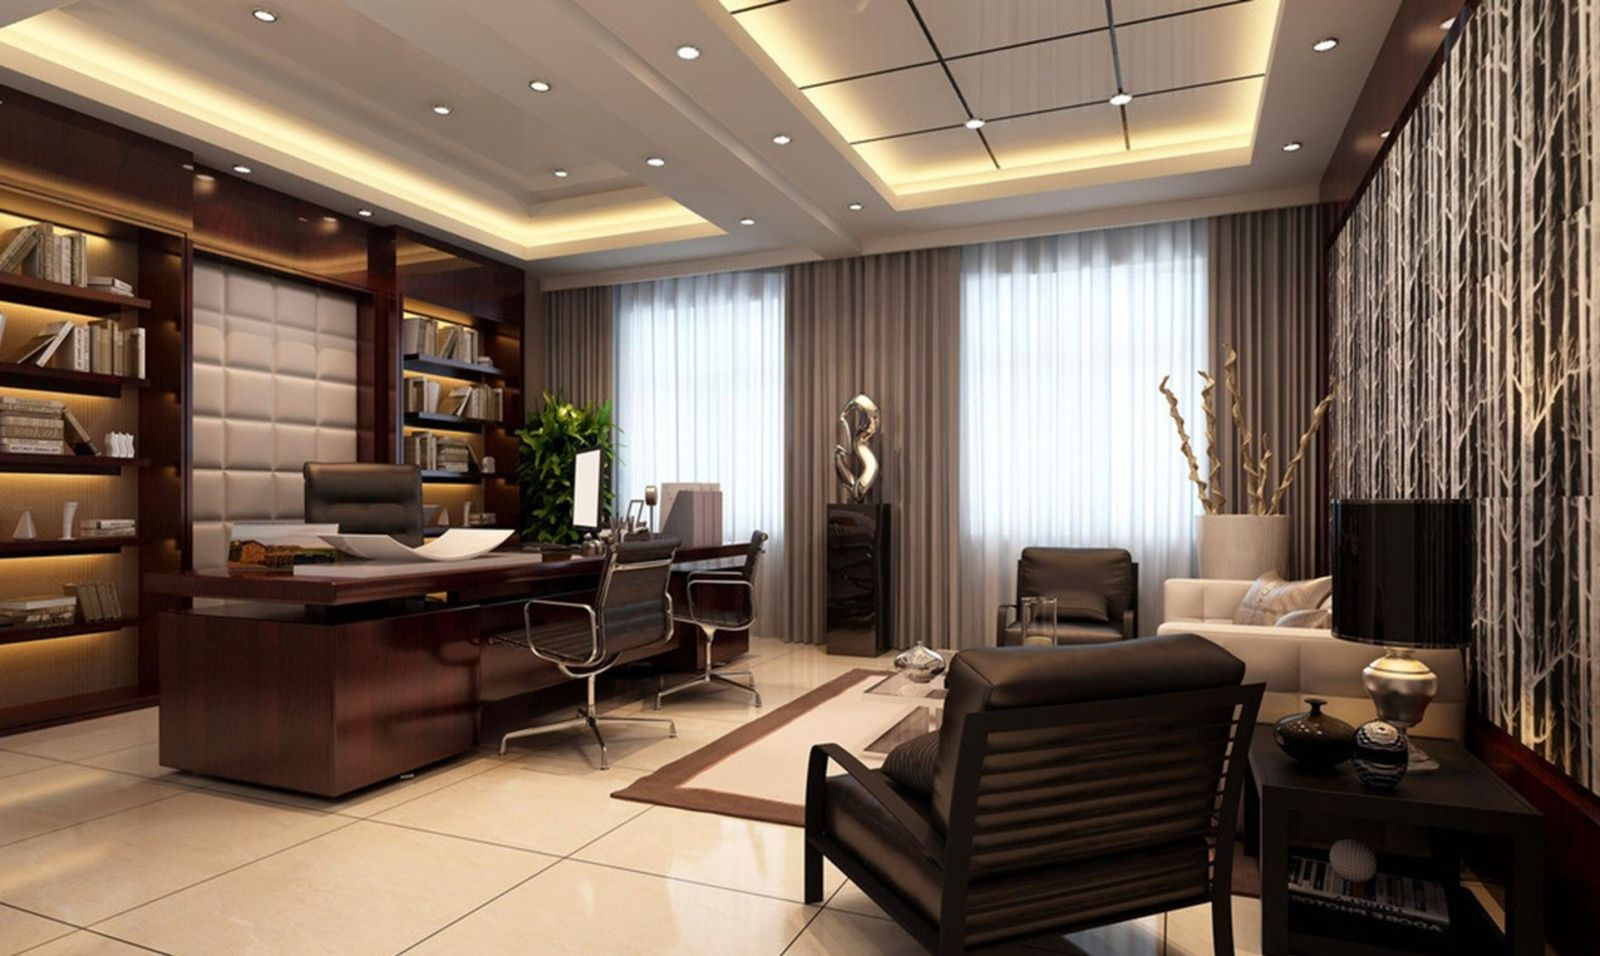 Modern Ceo fice Interior Design With Executive fice